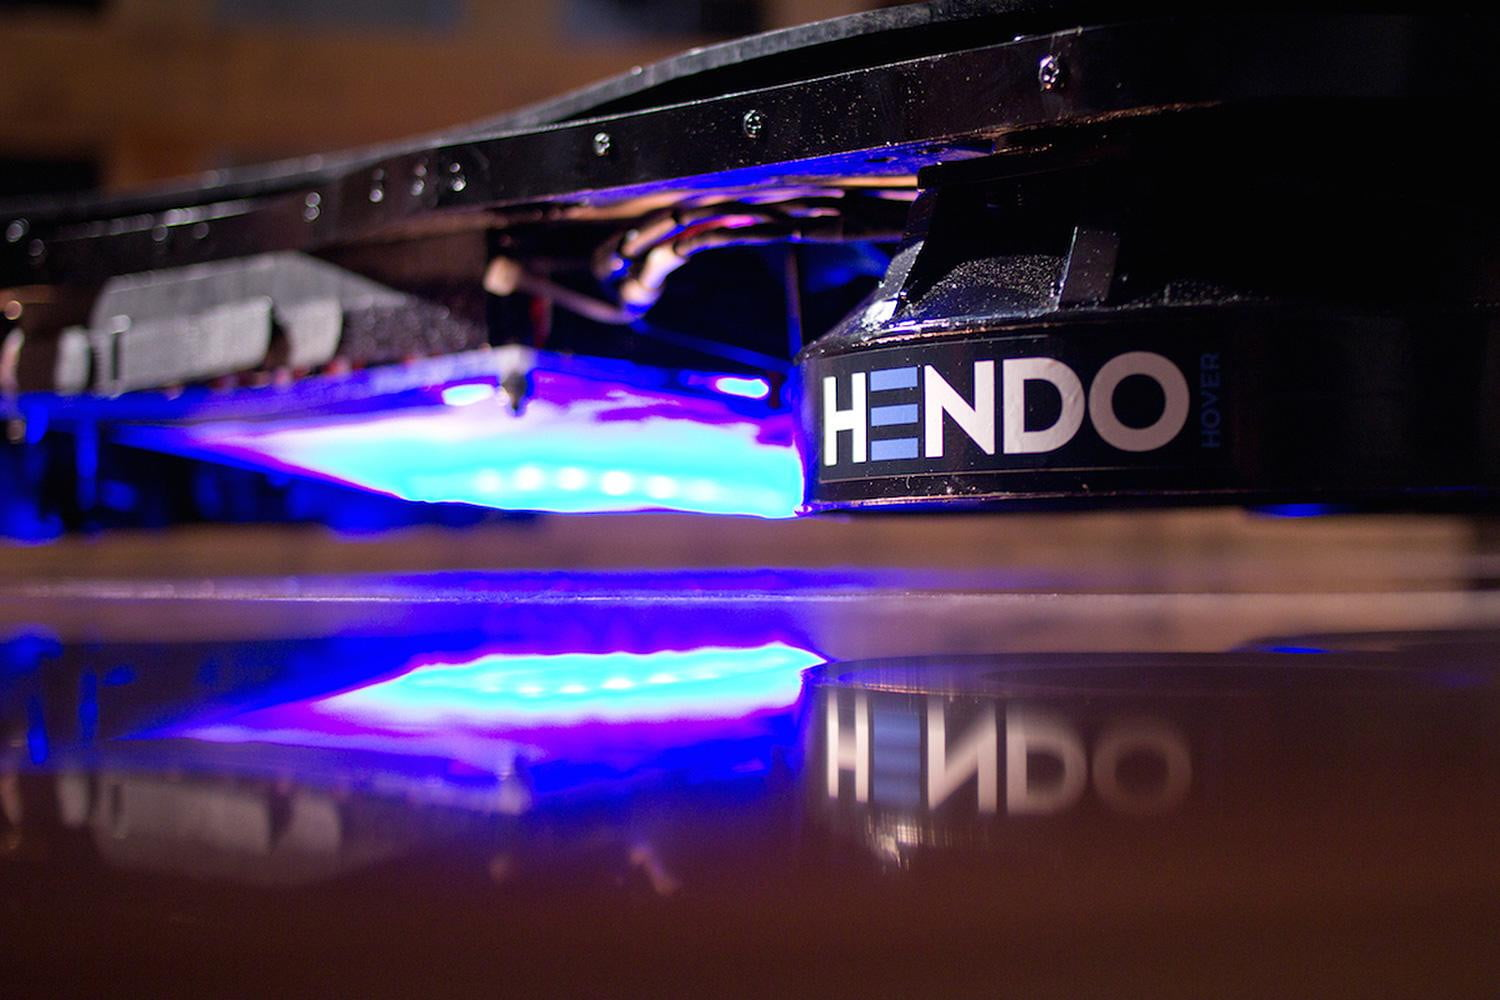 Real Working Hoverboard Marty Mcflys Hoverboard Is Finally Real Thanks To Hendo